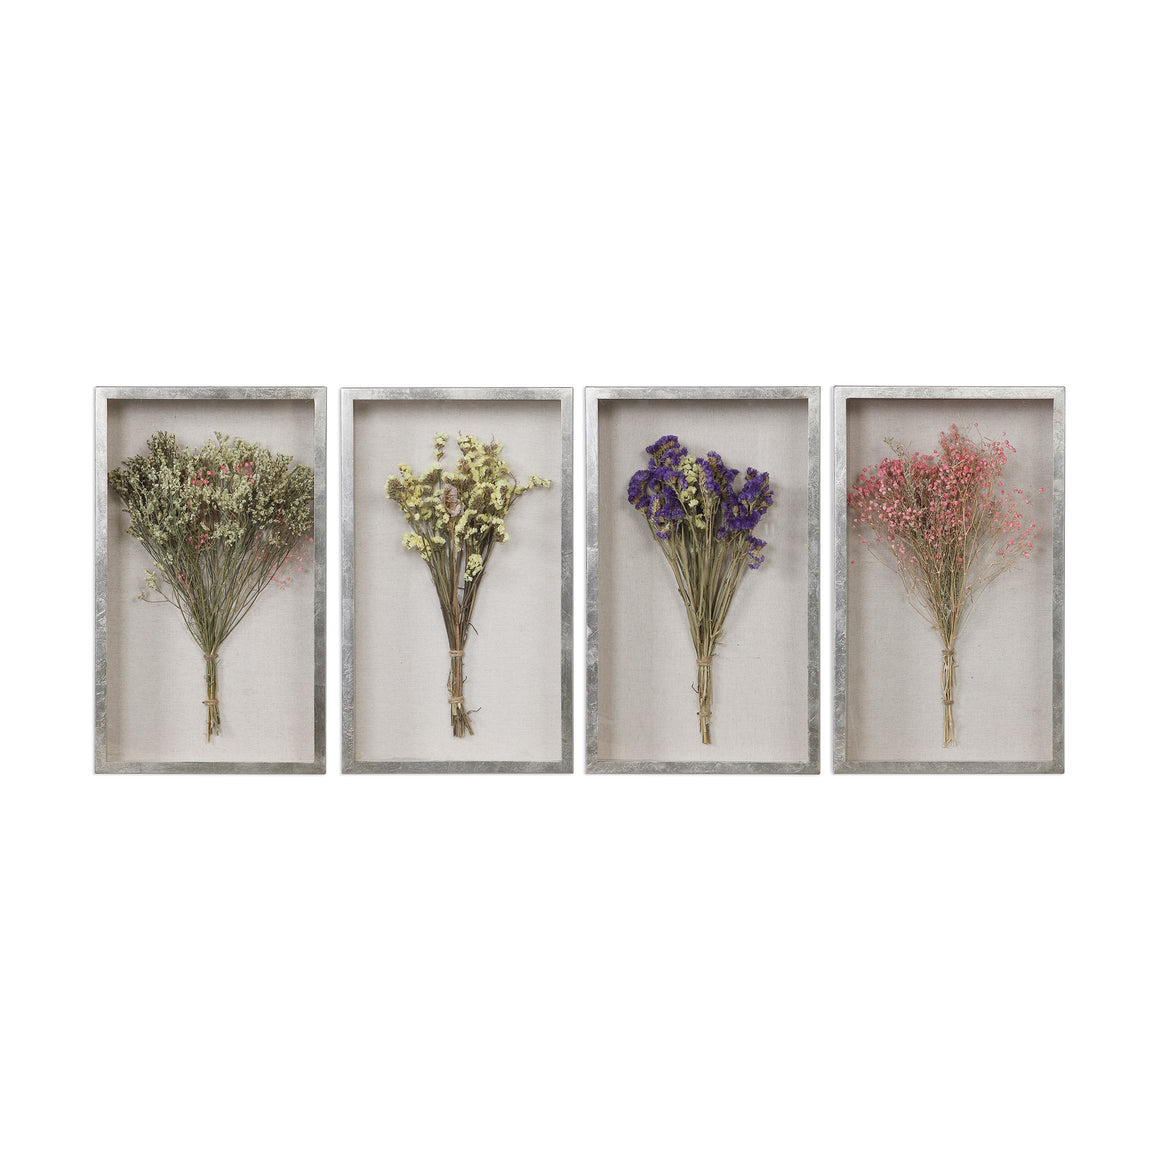 Floral Shadow Box, Set of 4